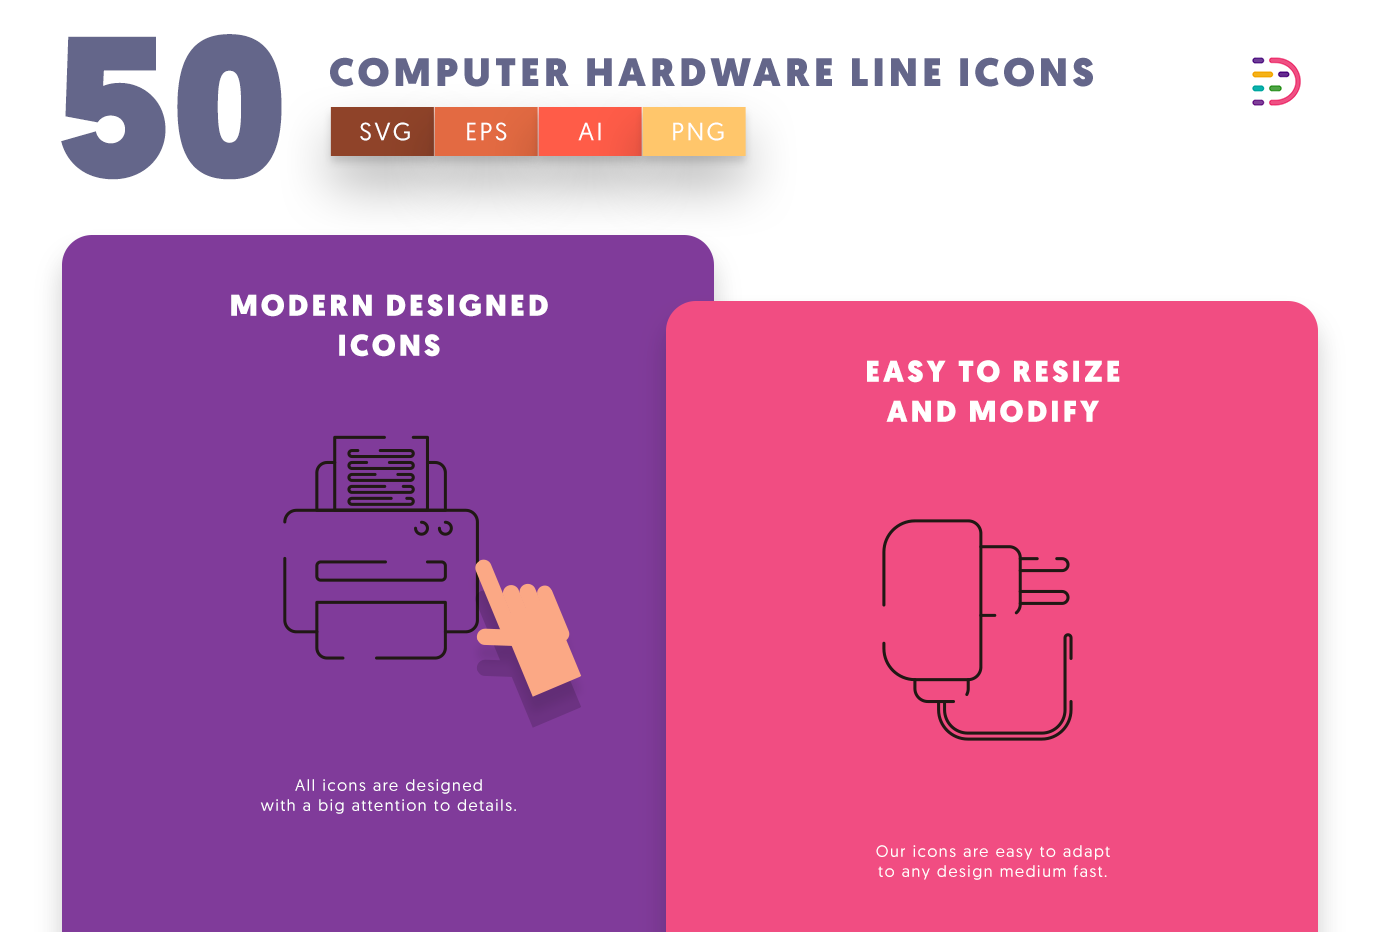 Computer Hardware Line icons png/svg/eps